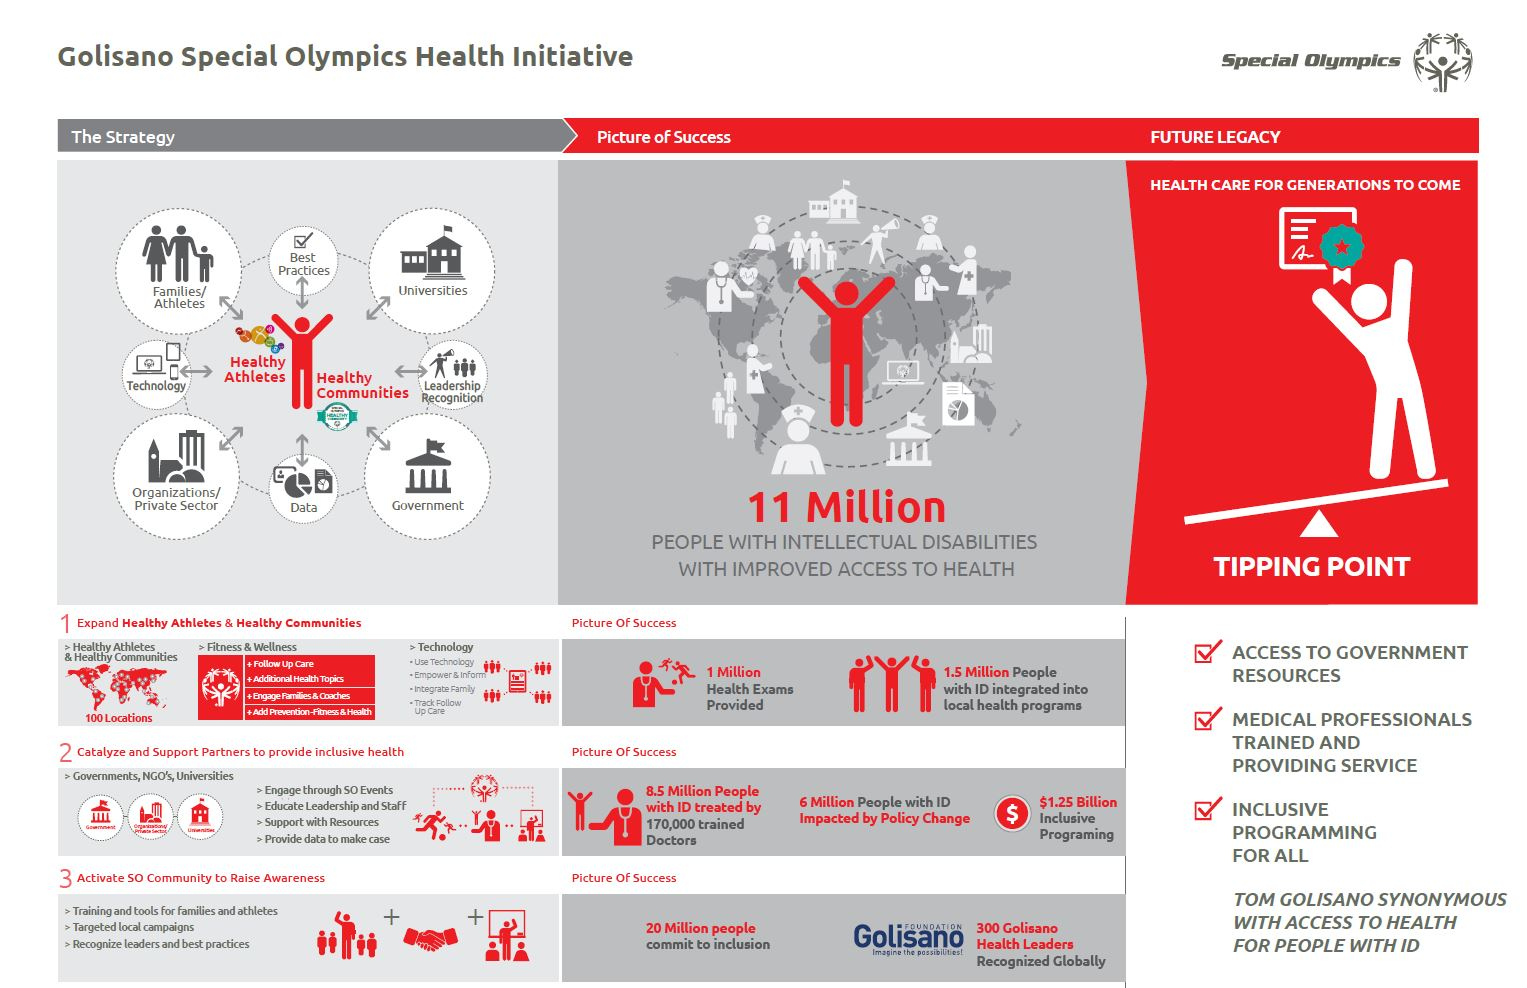 Special Olympics Catalog Of Health Resources